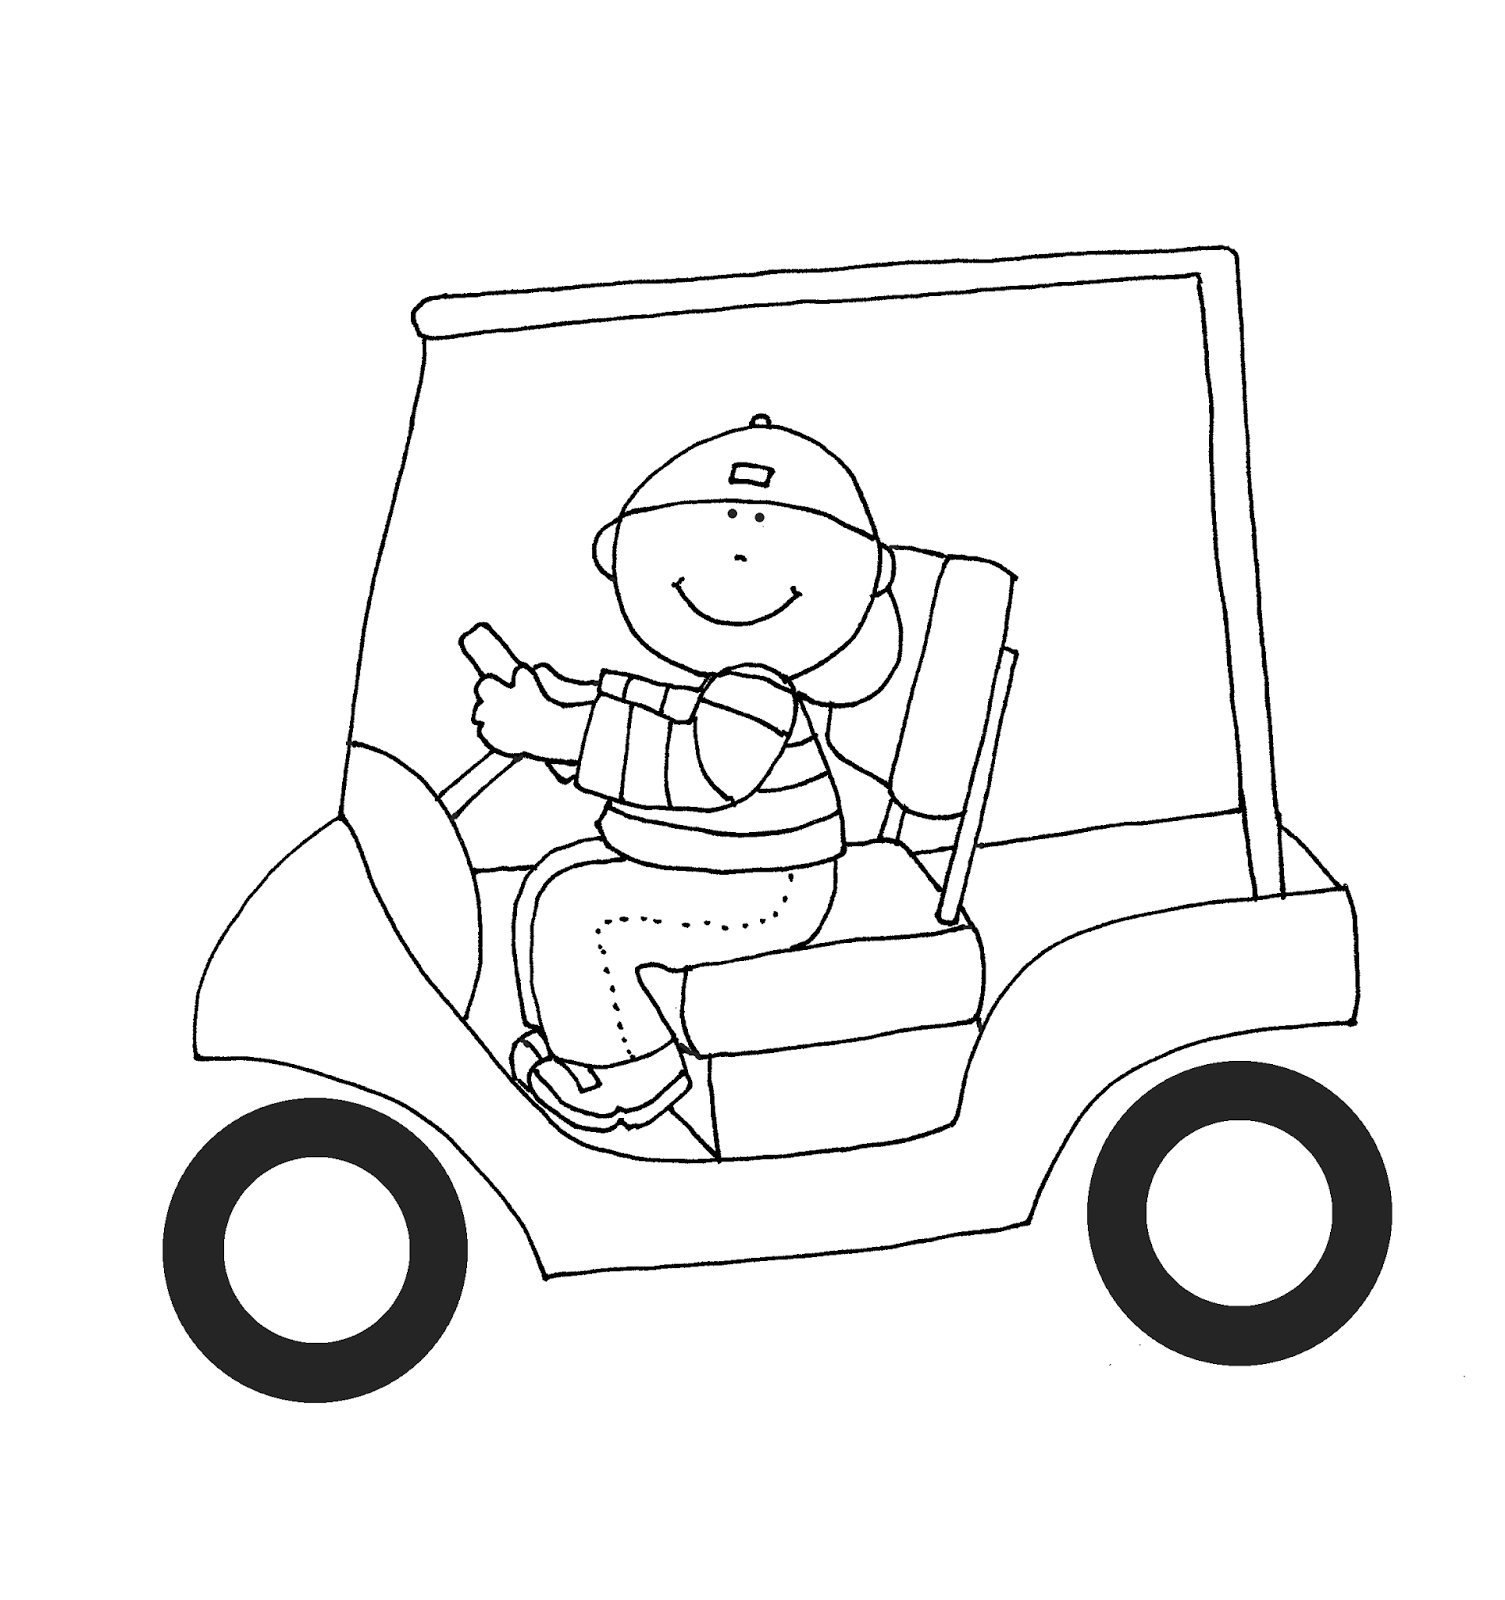 Golf Cart Drawing At Free For Personal Use Columbia Par Car Ignition Wiring Diagram 1505x1600 Dearie Dolls Digi Stamps As Requested Boy In